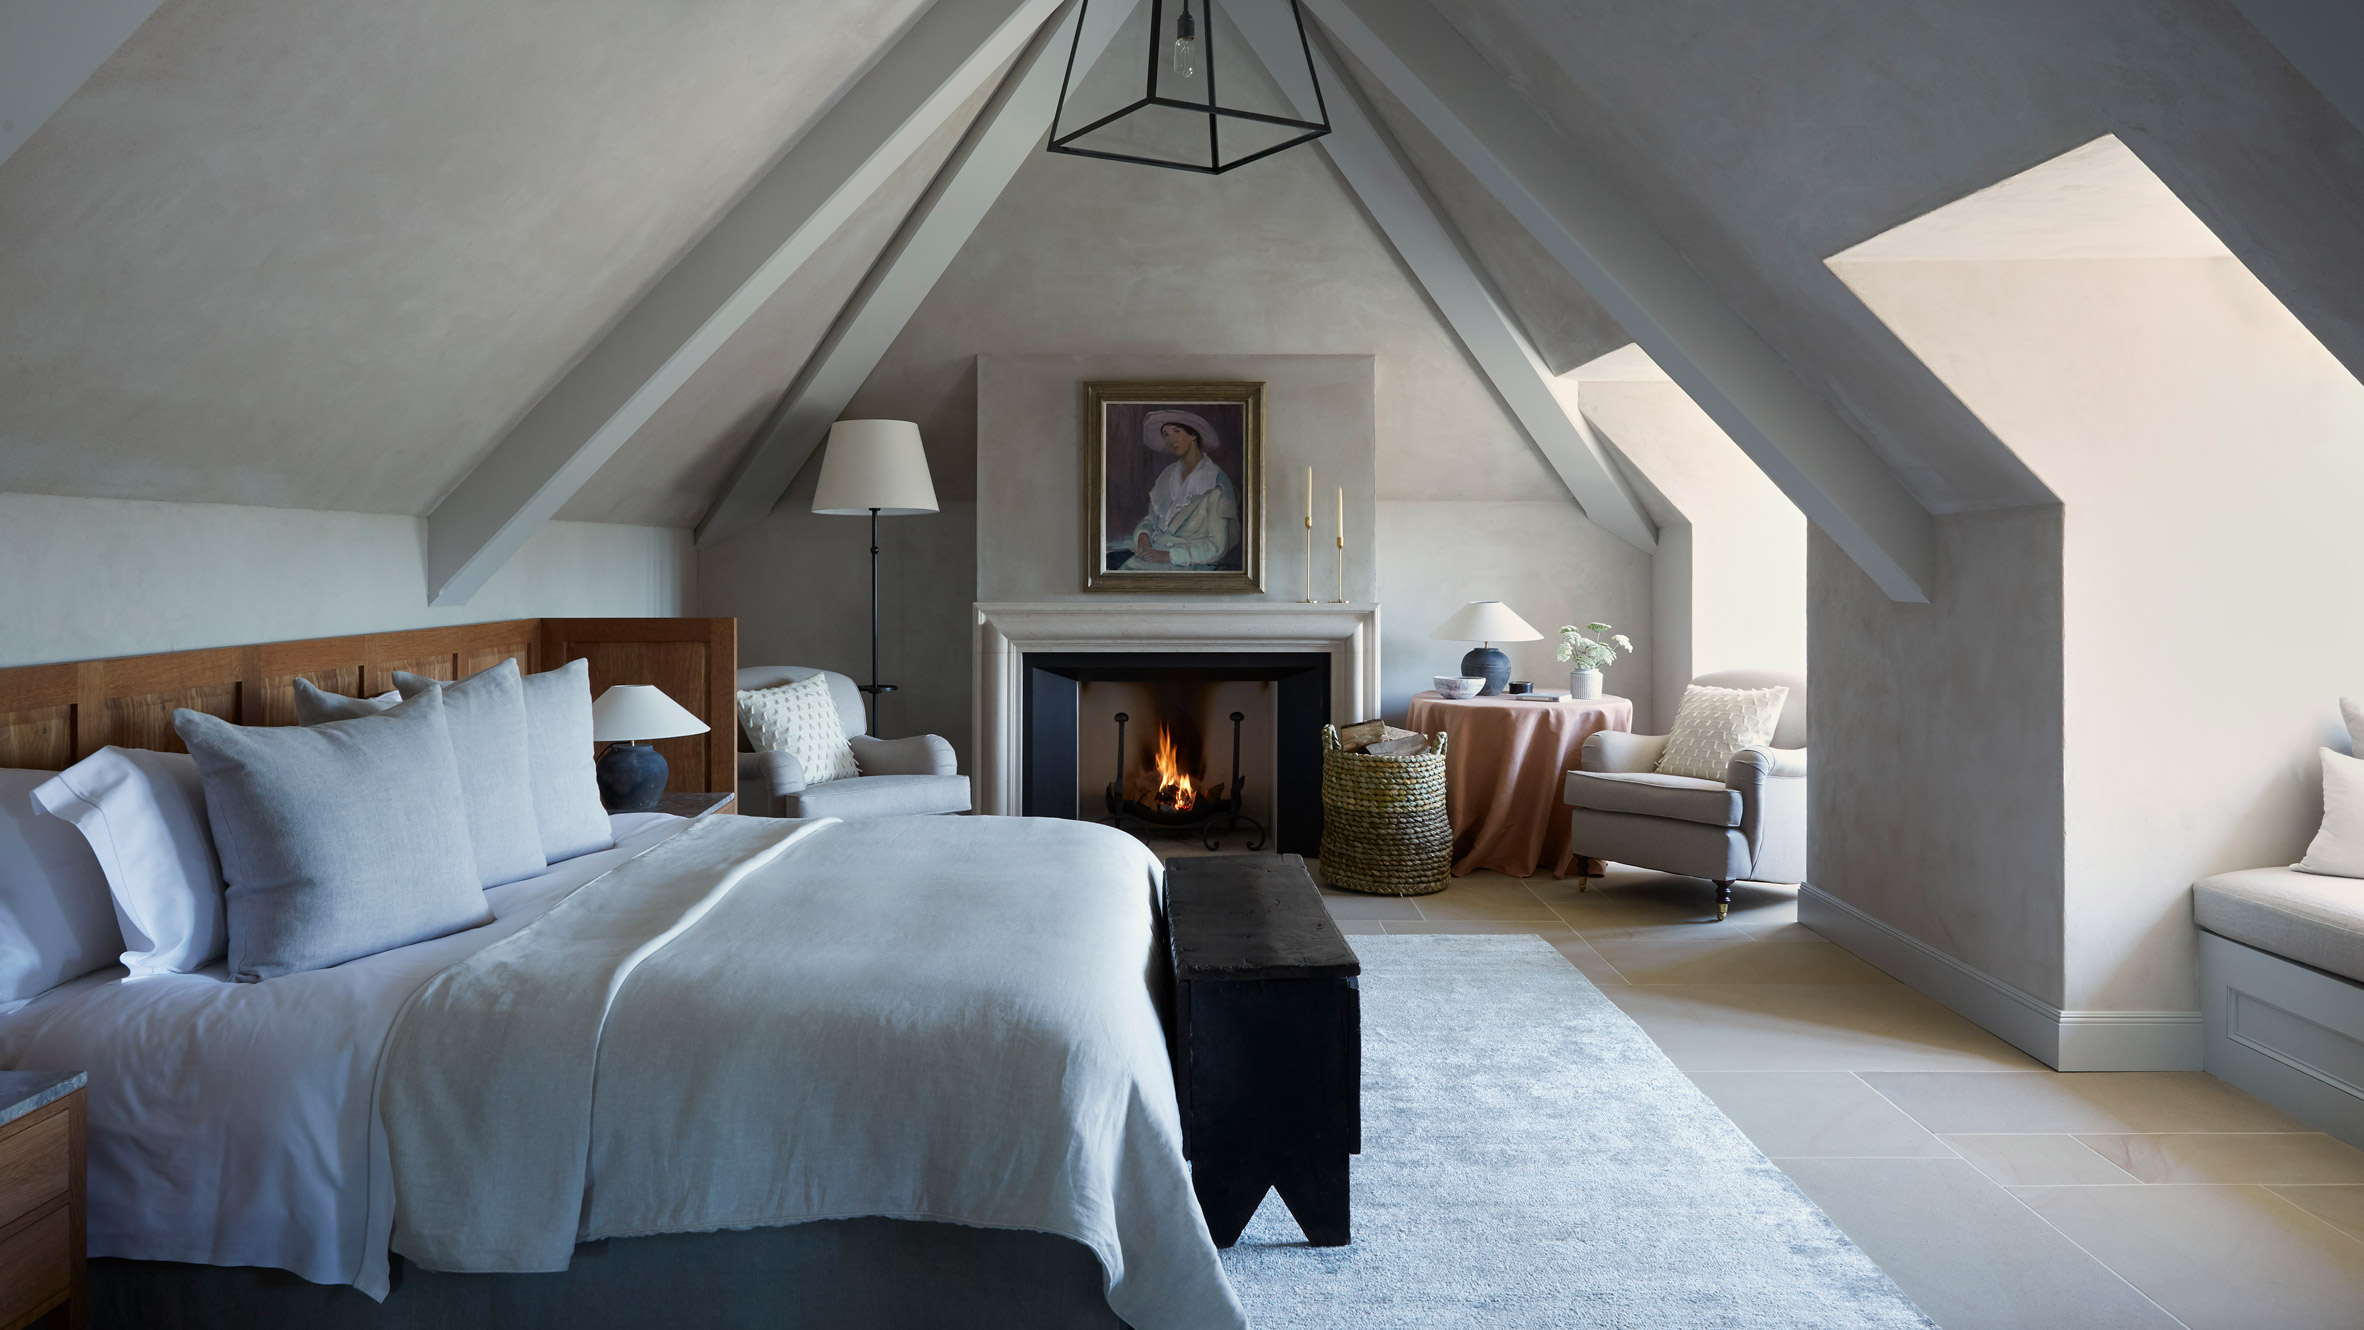 Six new hotels in England with striking interiors